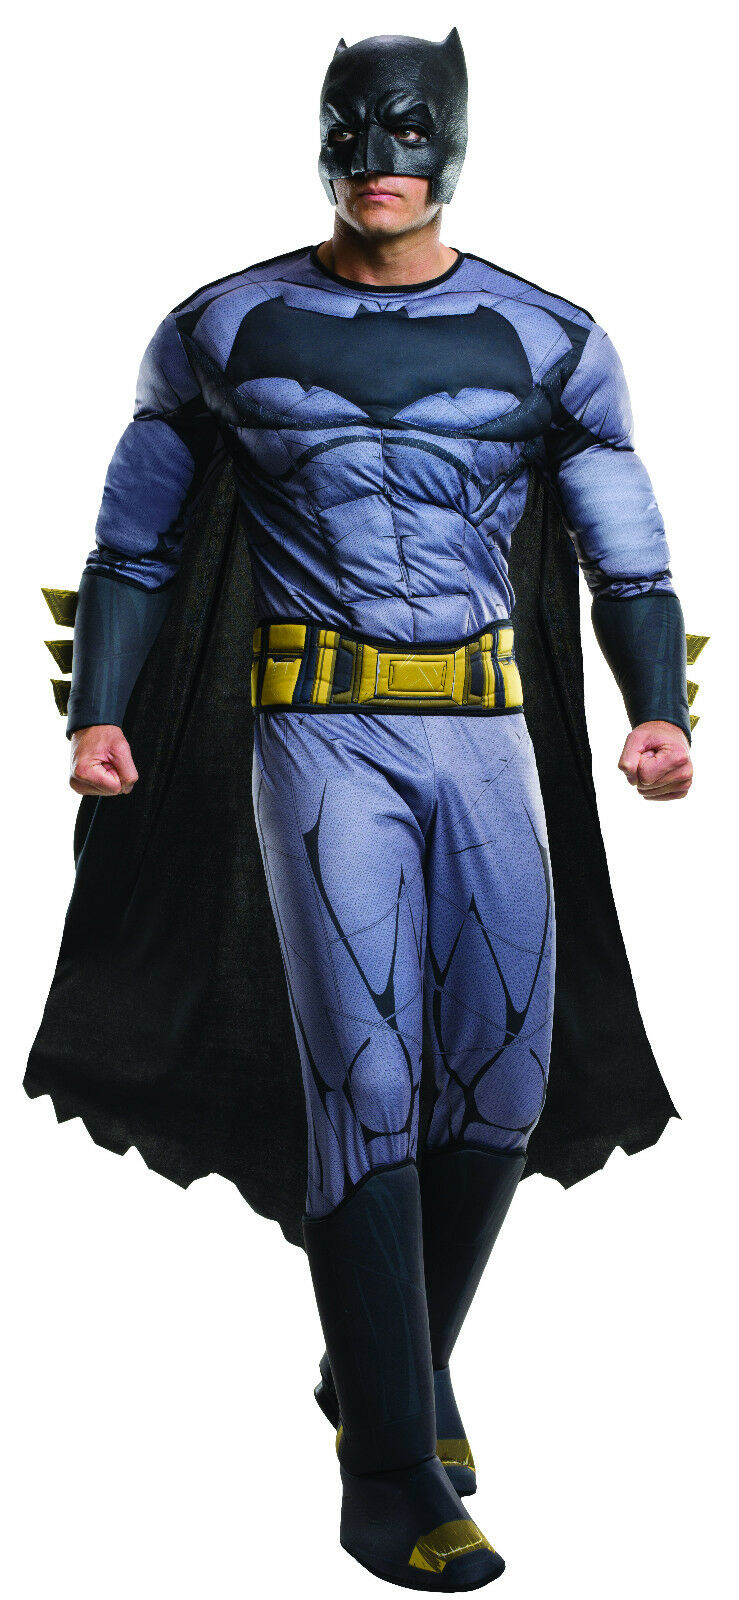 Justice League / Batman versus Superman - Deluxe Batman Adult Costume